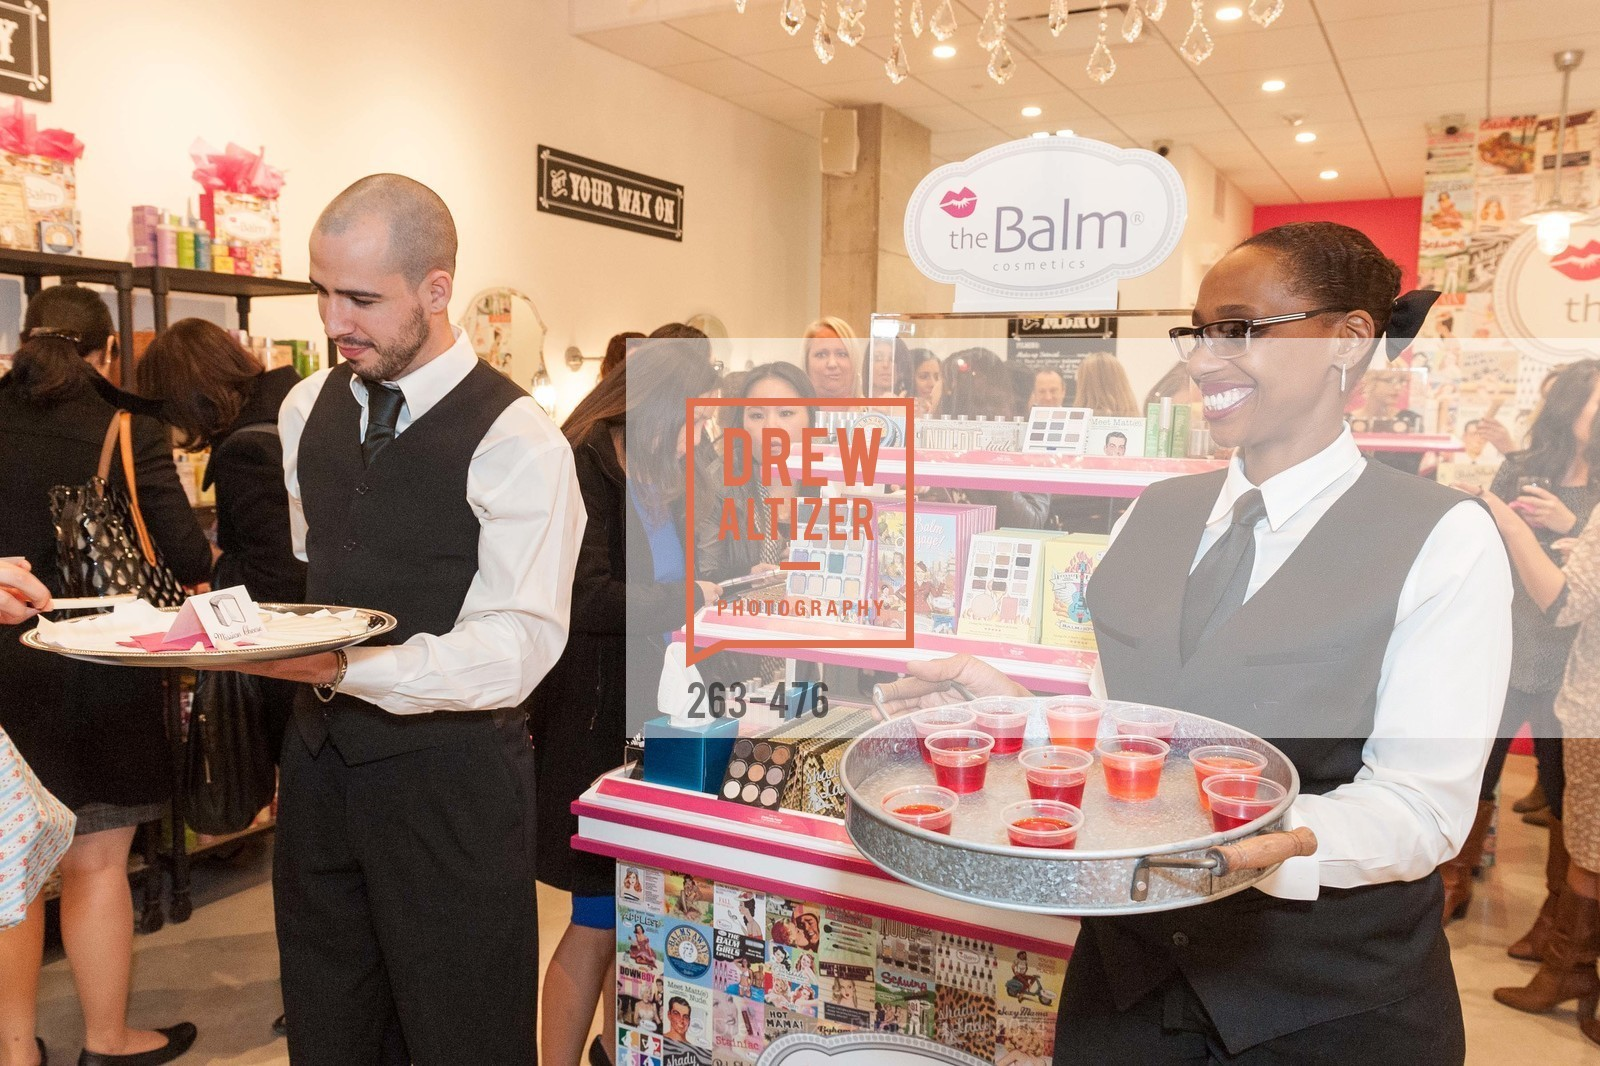 Extras, THE BALM COSMETICS Flagship Store Opening, January 23rd, 2014, Photo,Drew Altizer, Drew Altizer Photography, full-service event agency, private events, San Francisco photographer, photographer California